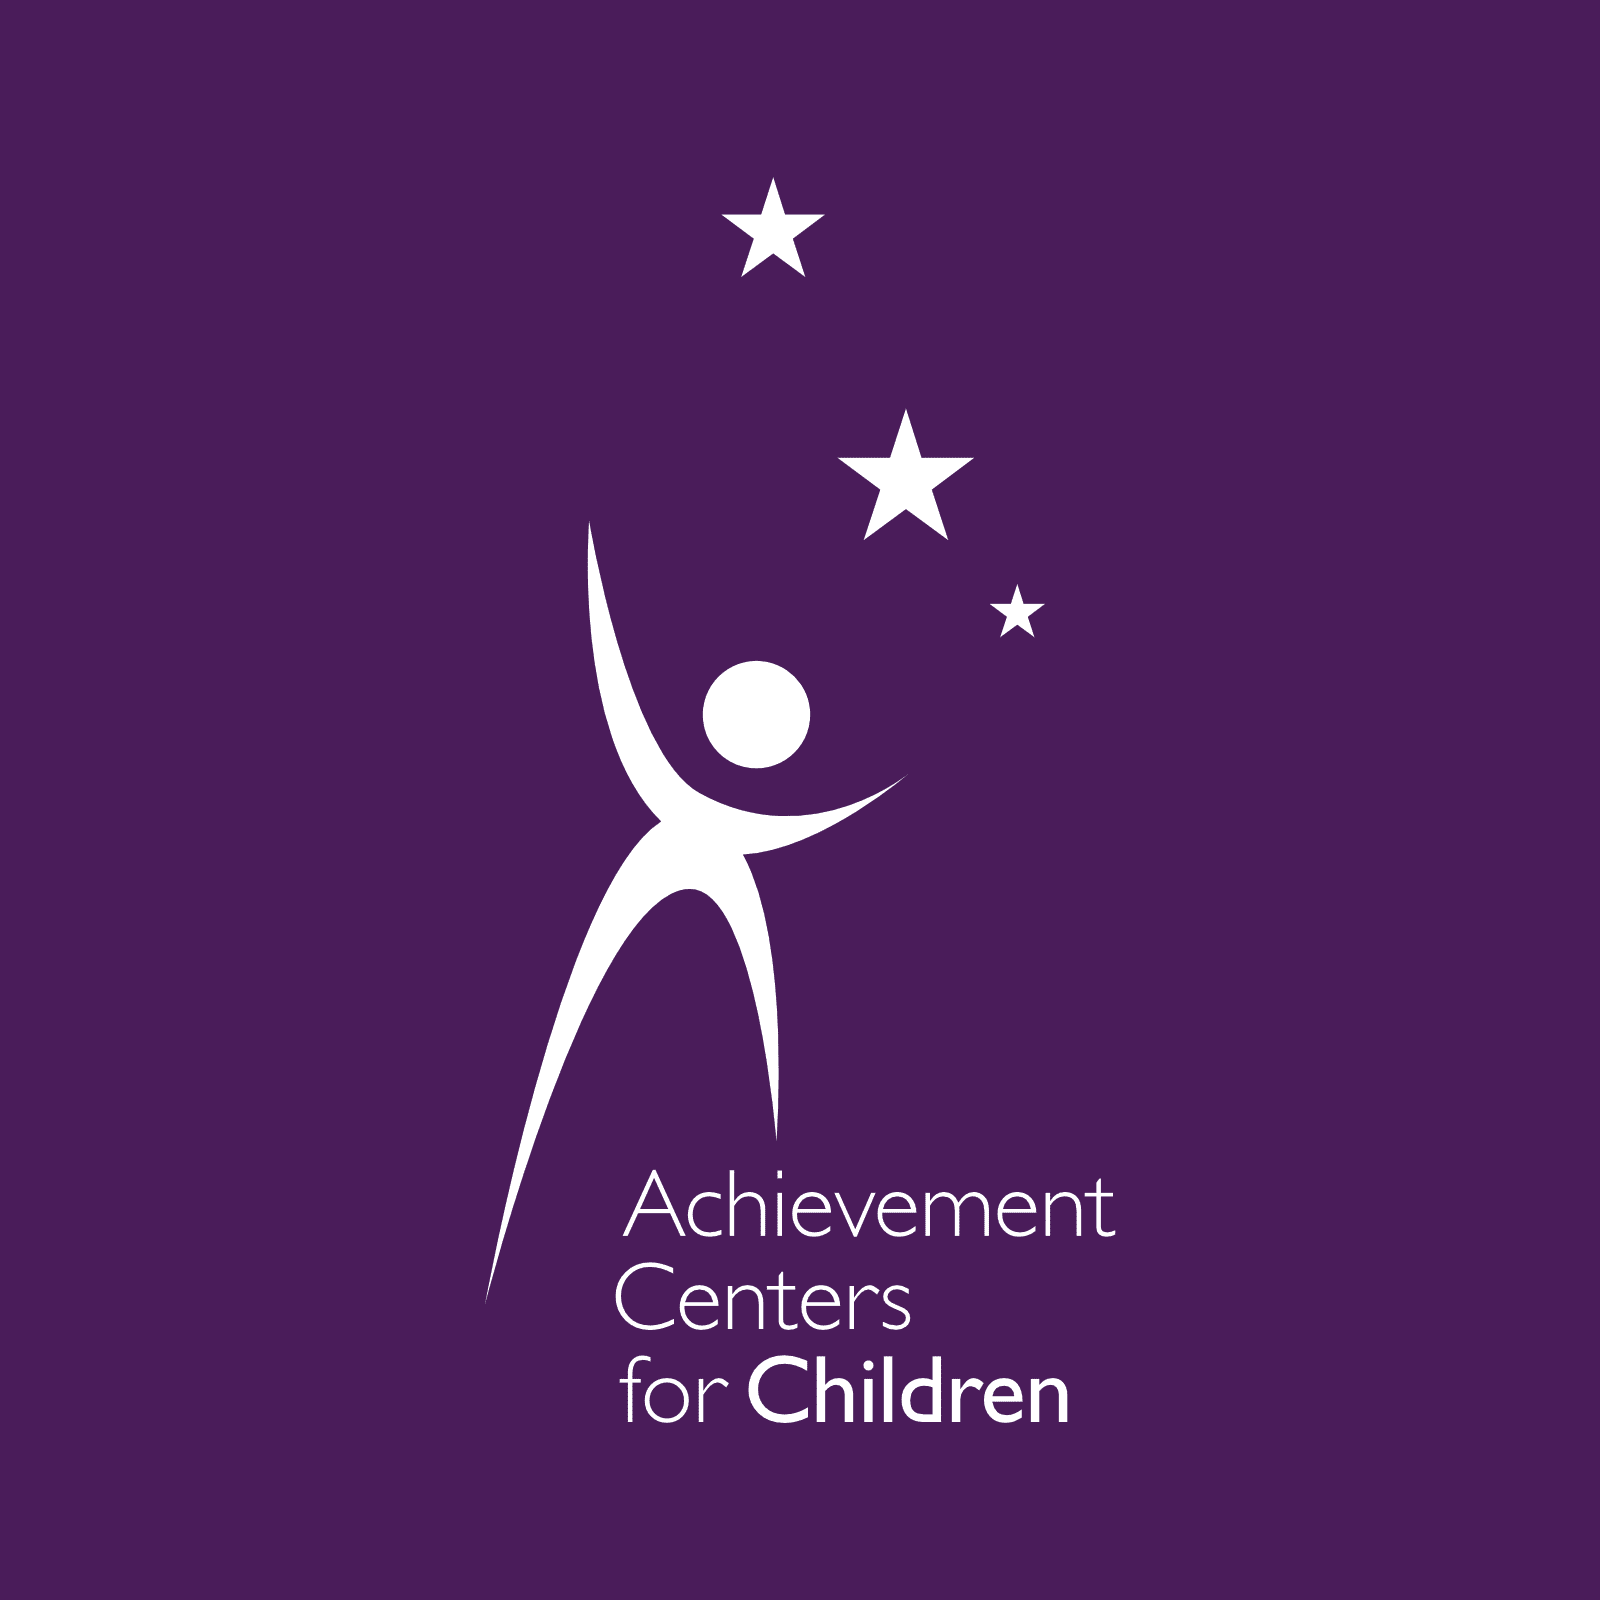 Logo for Achievement Centers for Children. A child playing with 3 stars